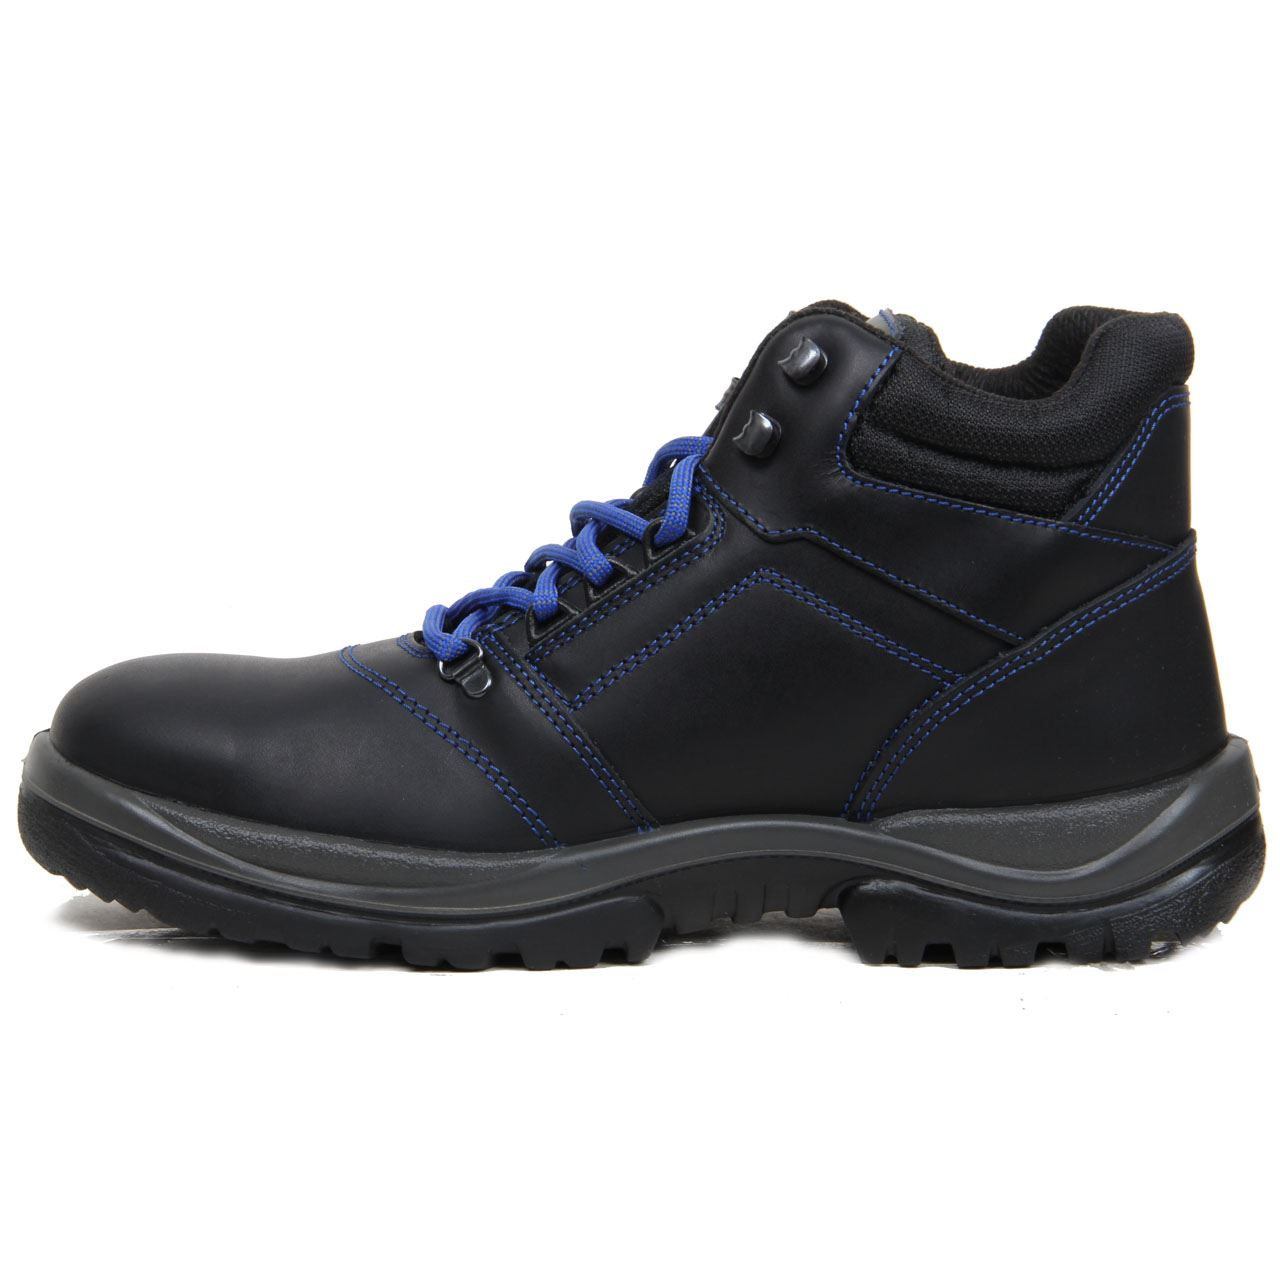 mens safety shoes leather work boots steel toe cap